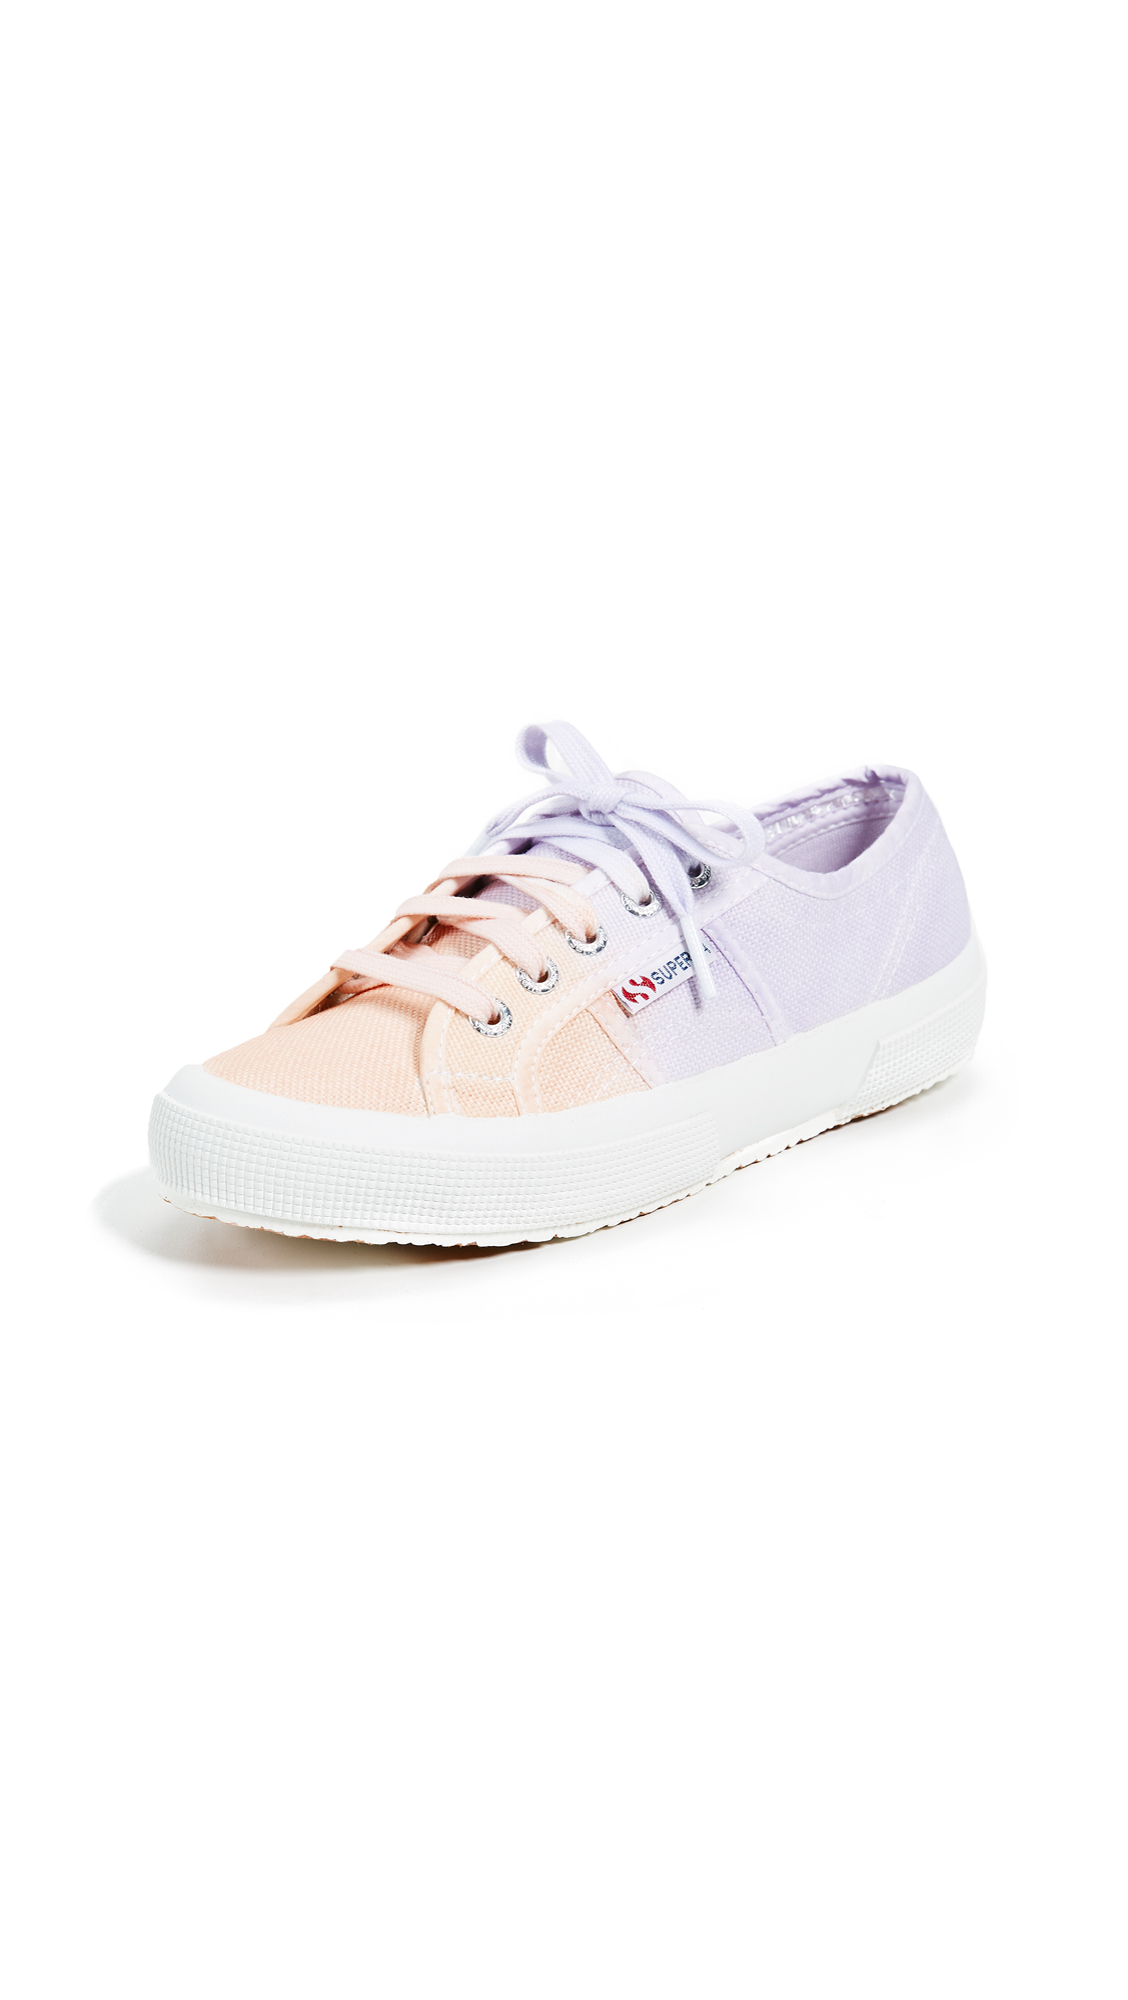 Superga 2750 Classic Lace Up Sneakers - Peach/Lavender